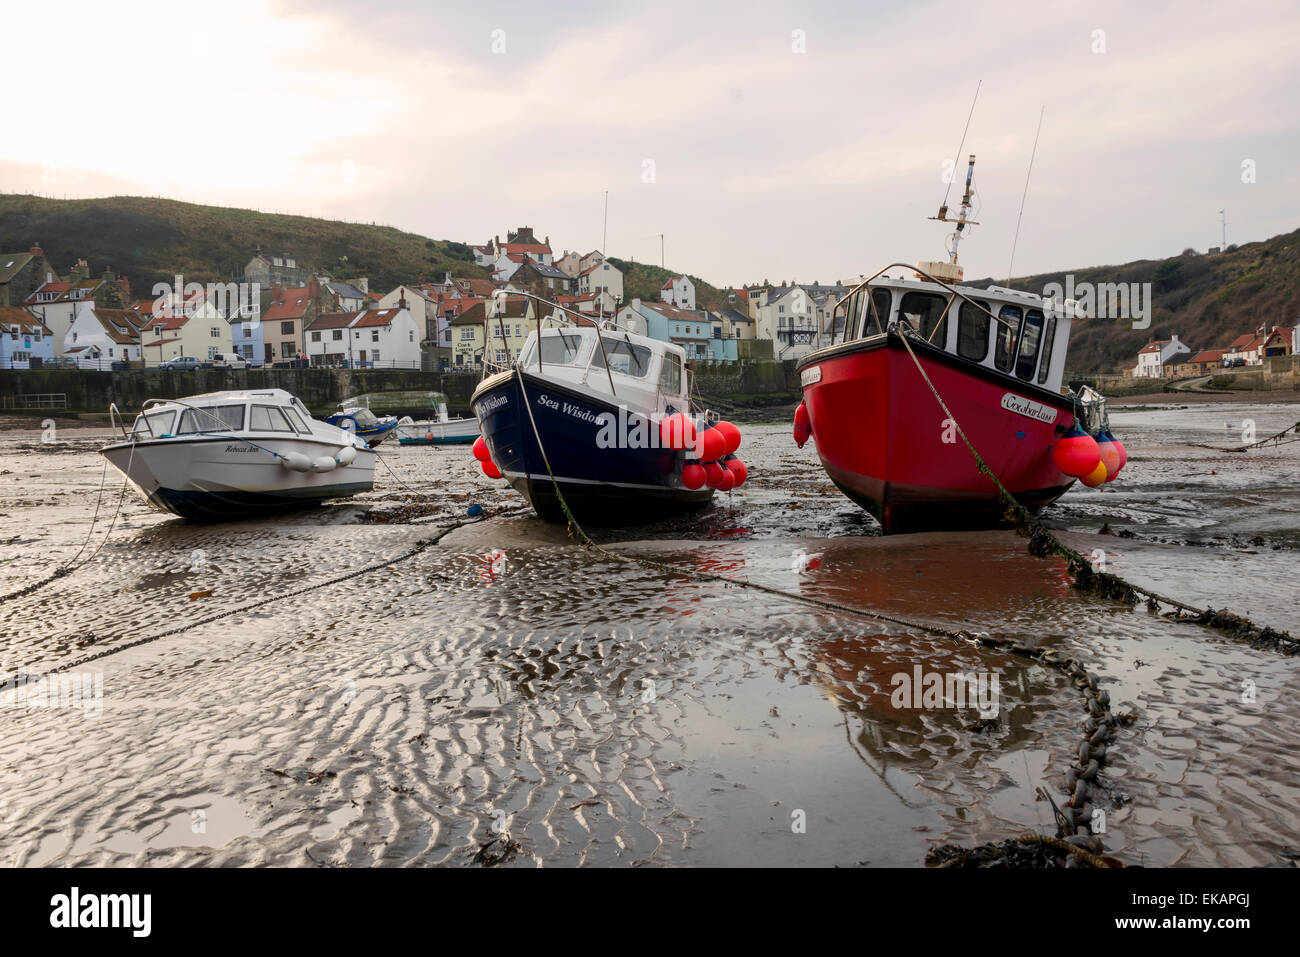 A group of 3 fishing boats on the sand at low tide in Staithes North Yorkshire. Stock Photo